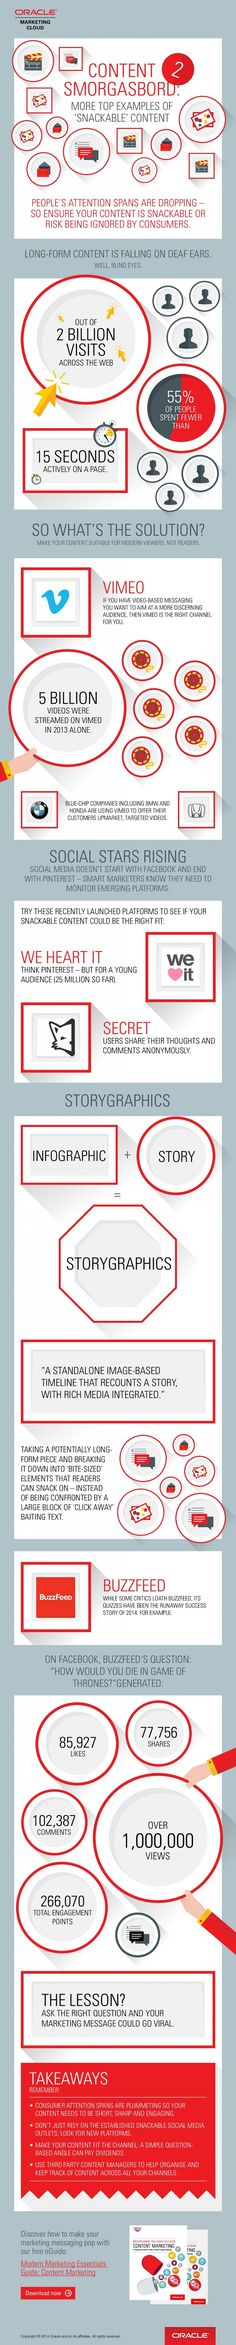 Tips for Driving Engagement with 'Snackable' Content - #ContentMarketing #infographic  (Nov., 2014)